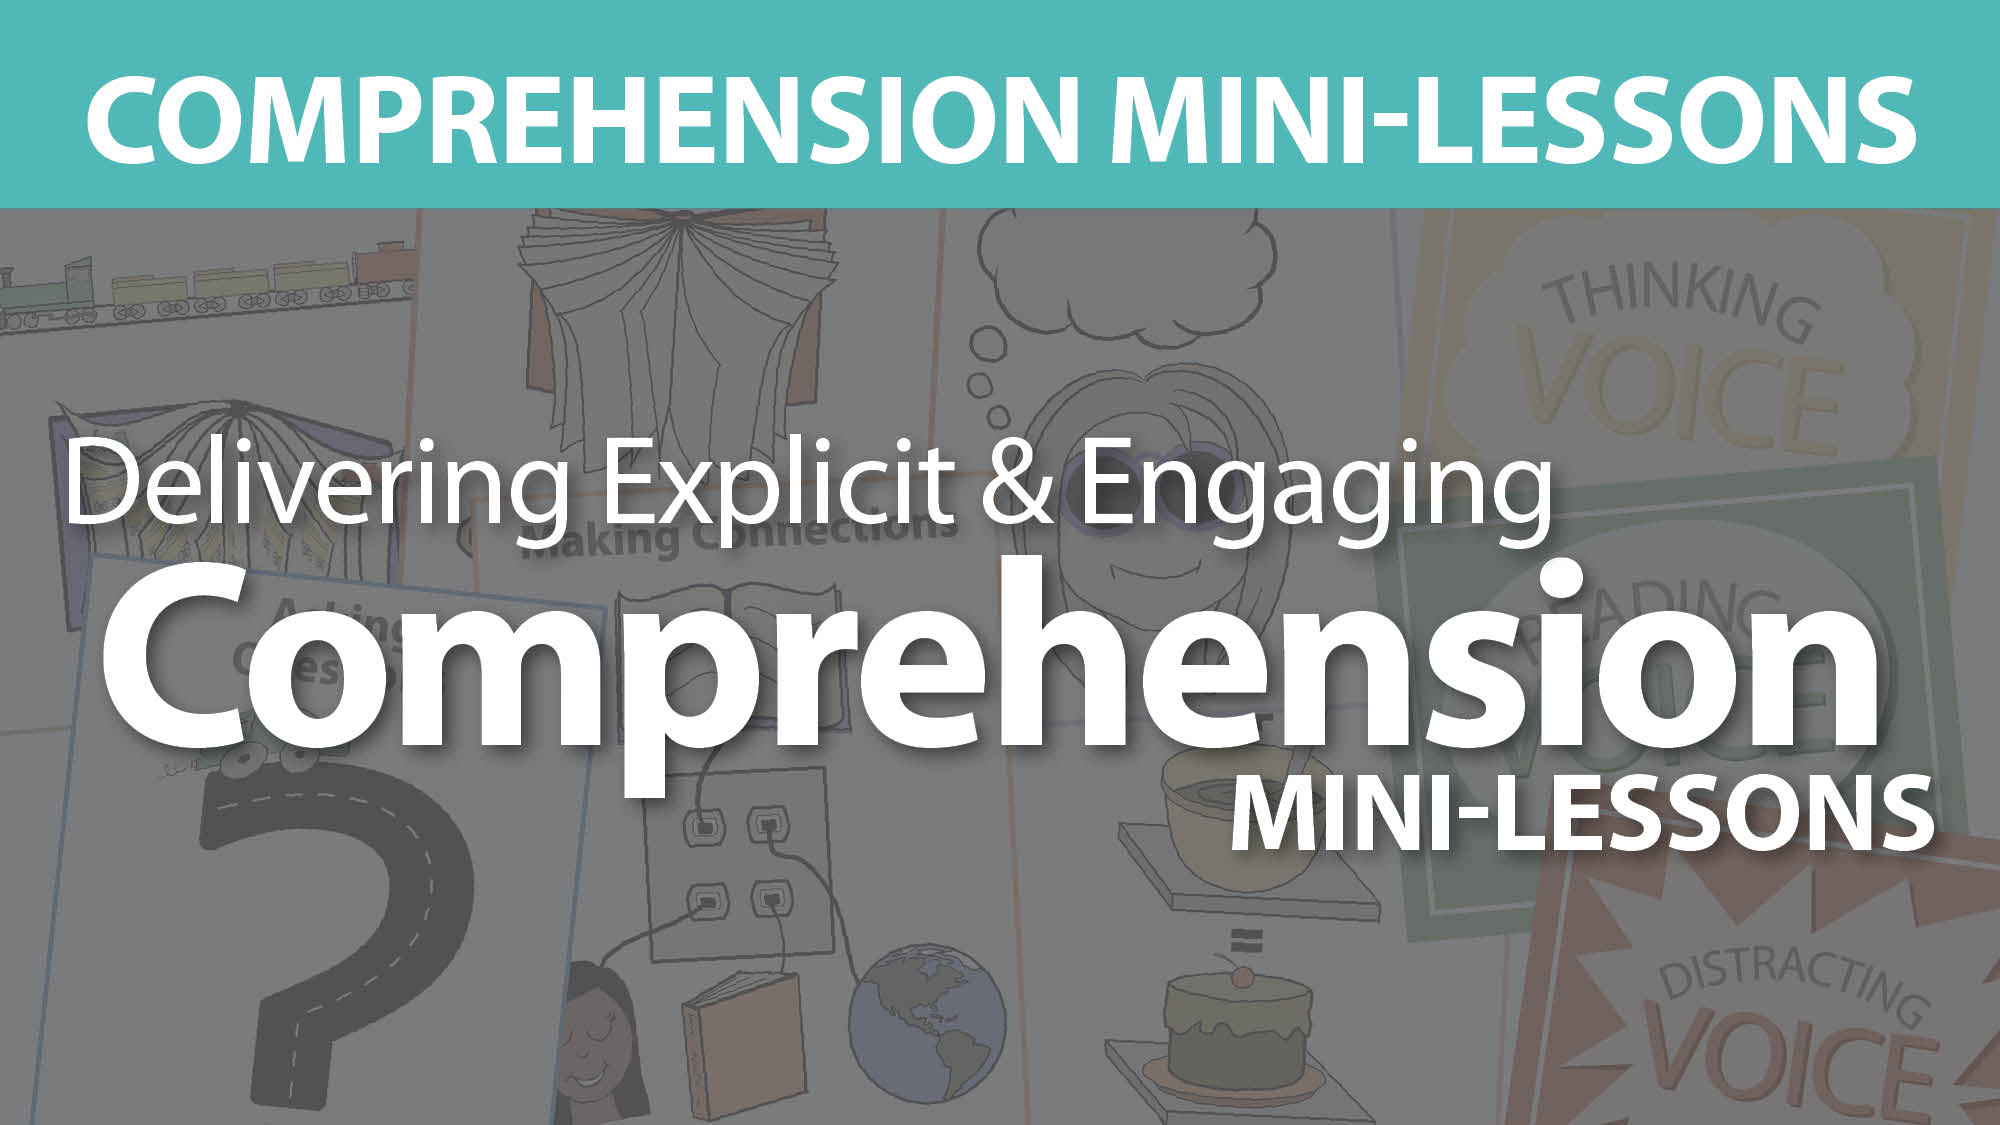 Delivering Explicit & Engaging Comprehension Mini-Lessons